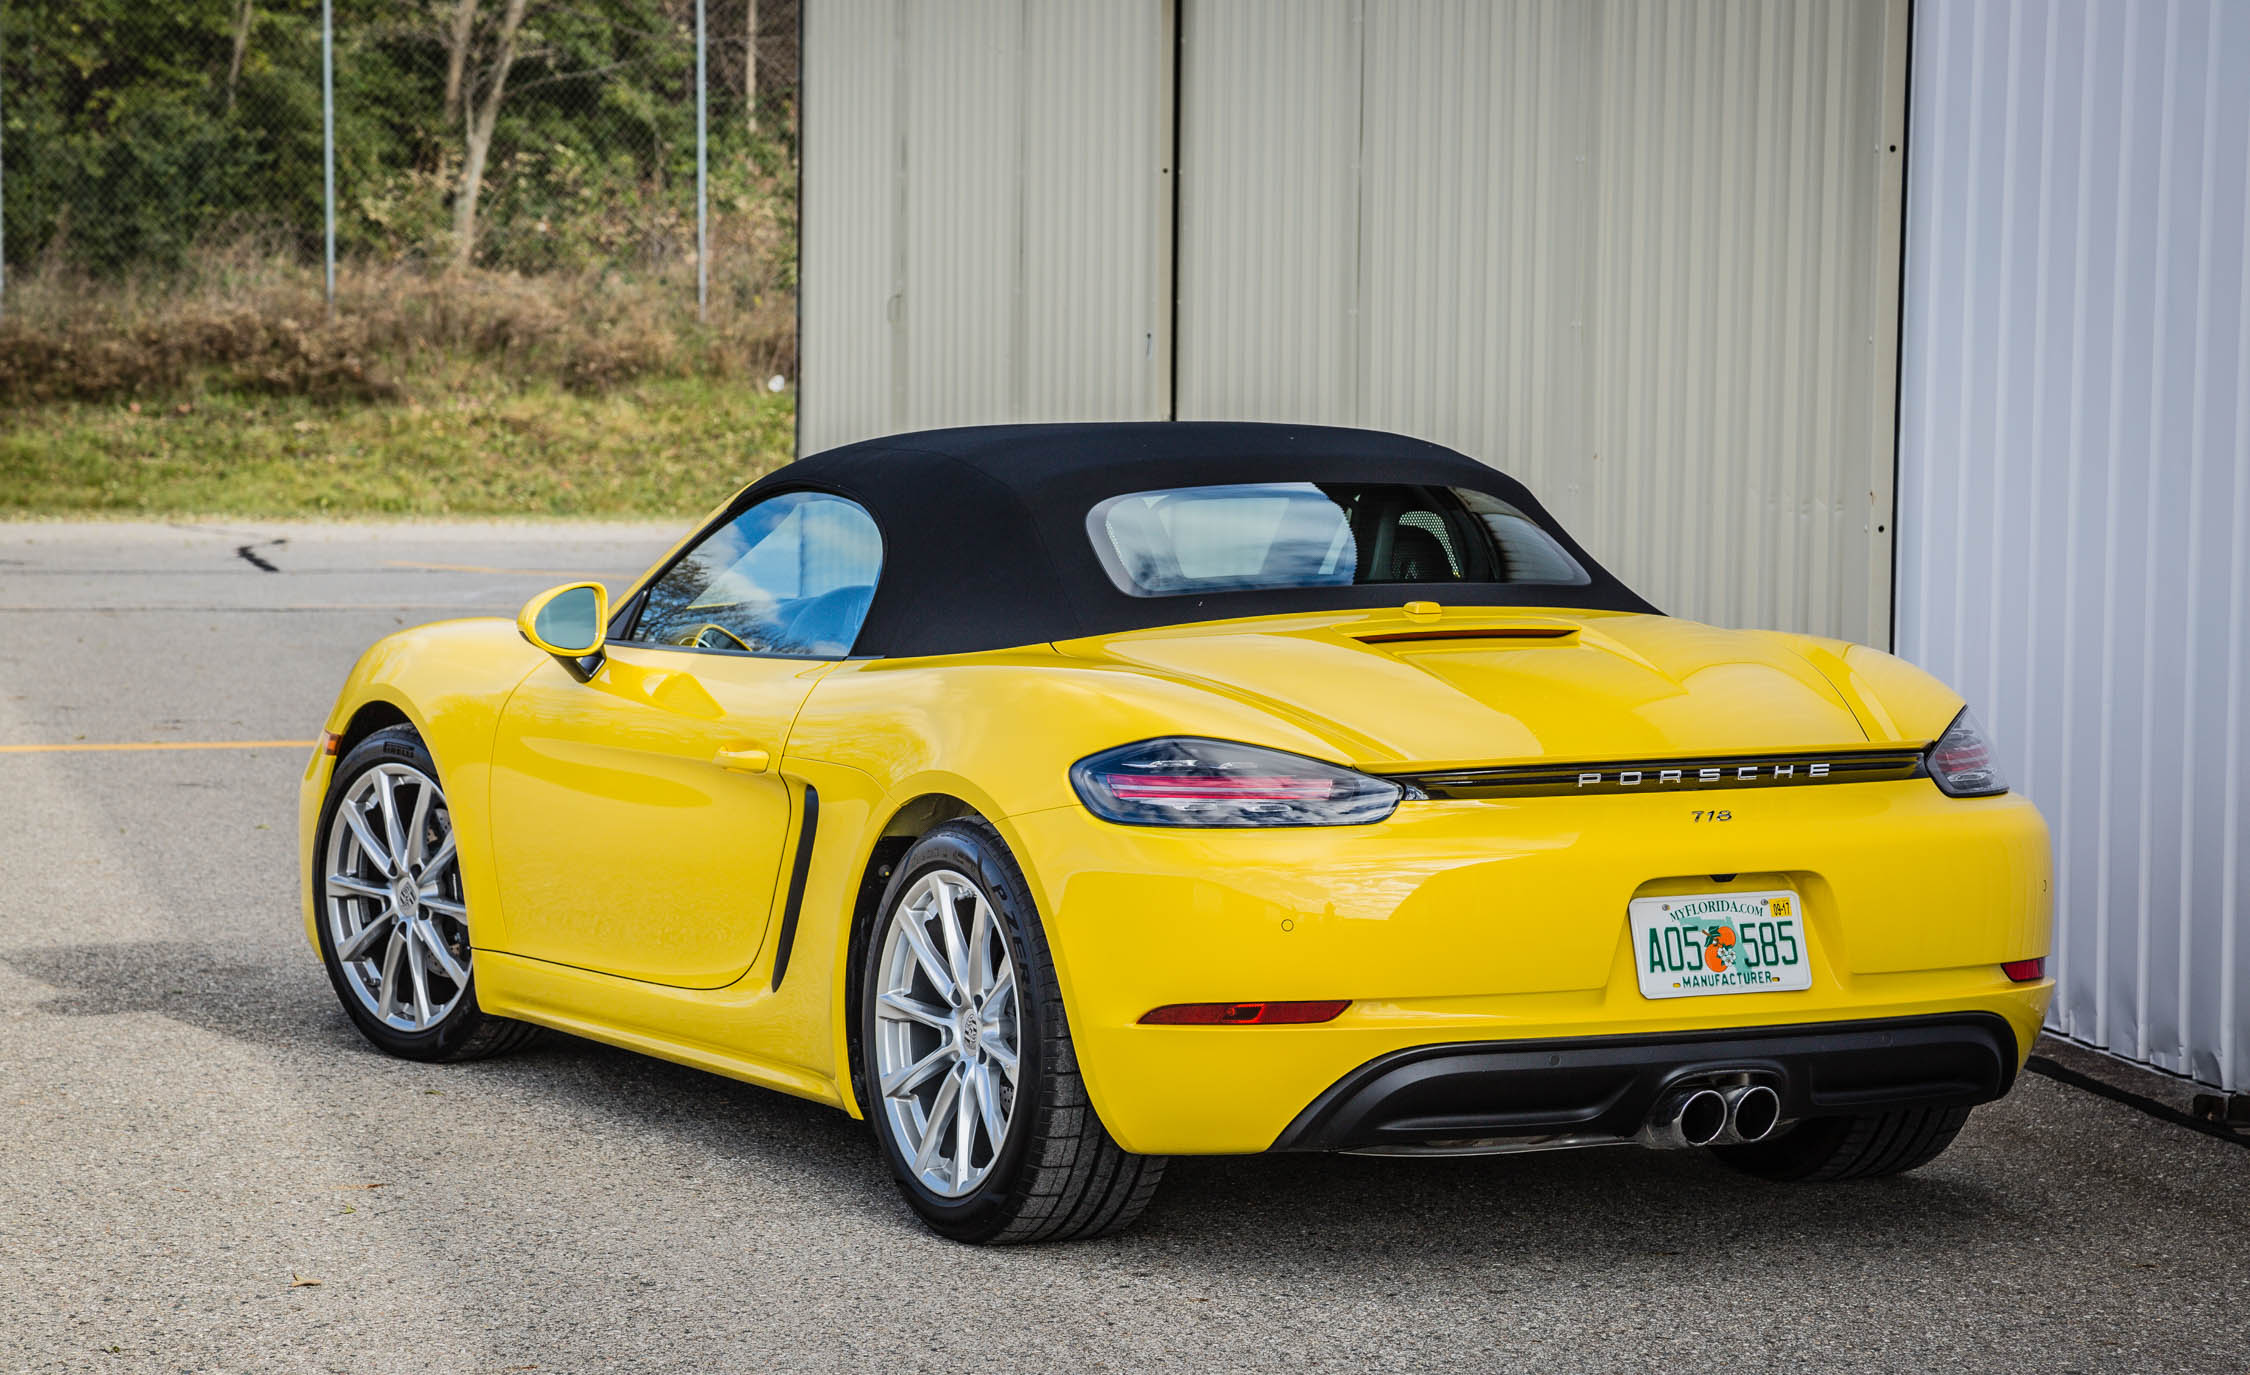 2017 Porsche 718 Boxster Exterior Rear And Side (View 17 of 71)